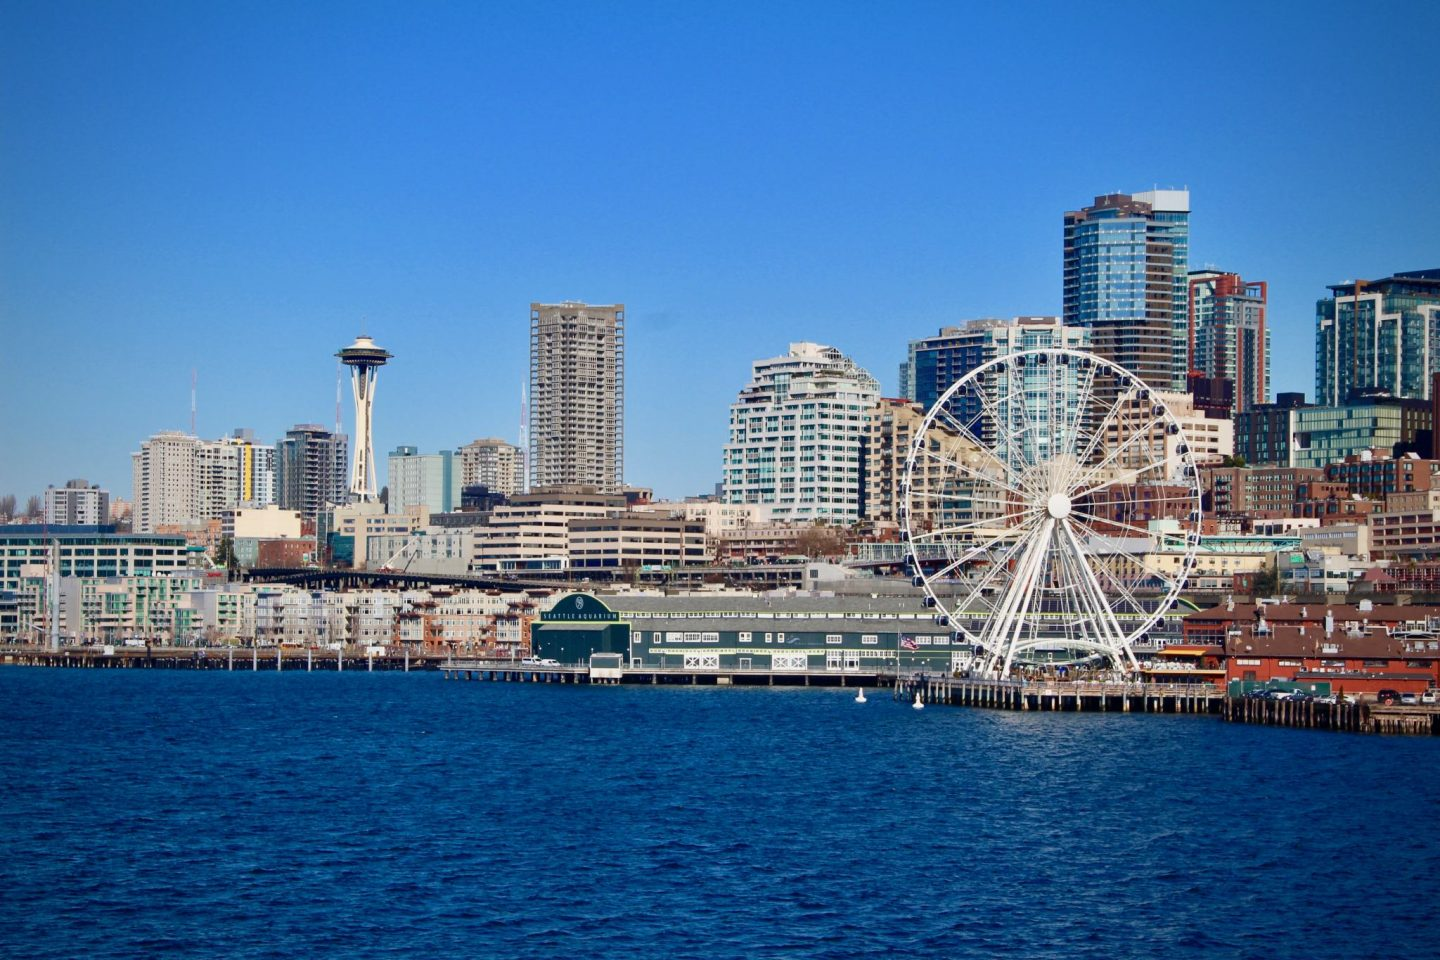 Seattle skyline view, Washington - The Spectacular Adventurer